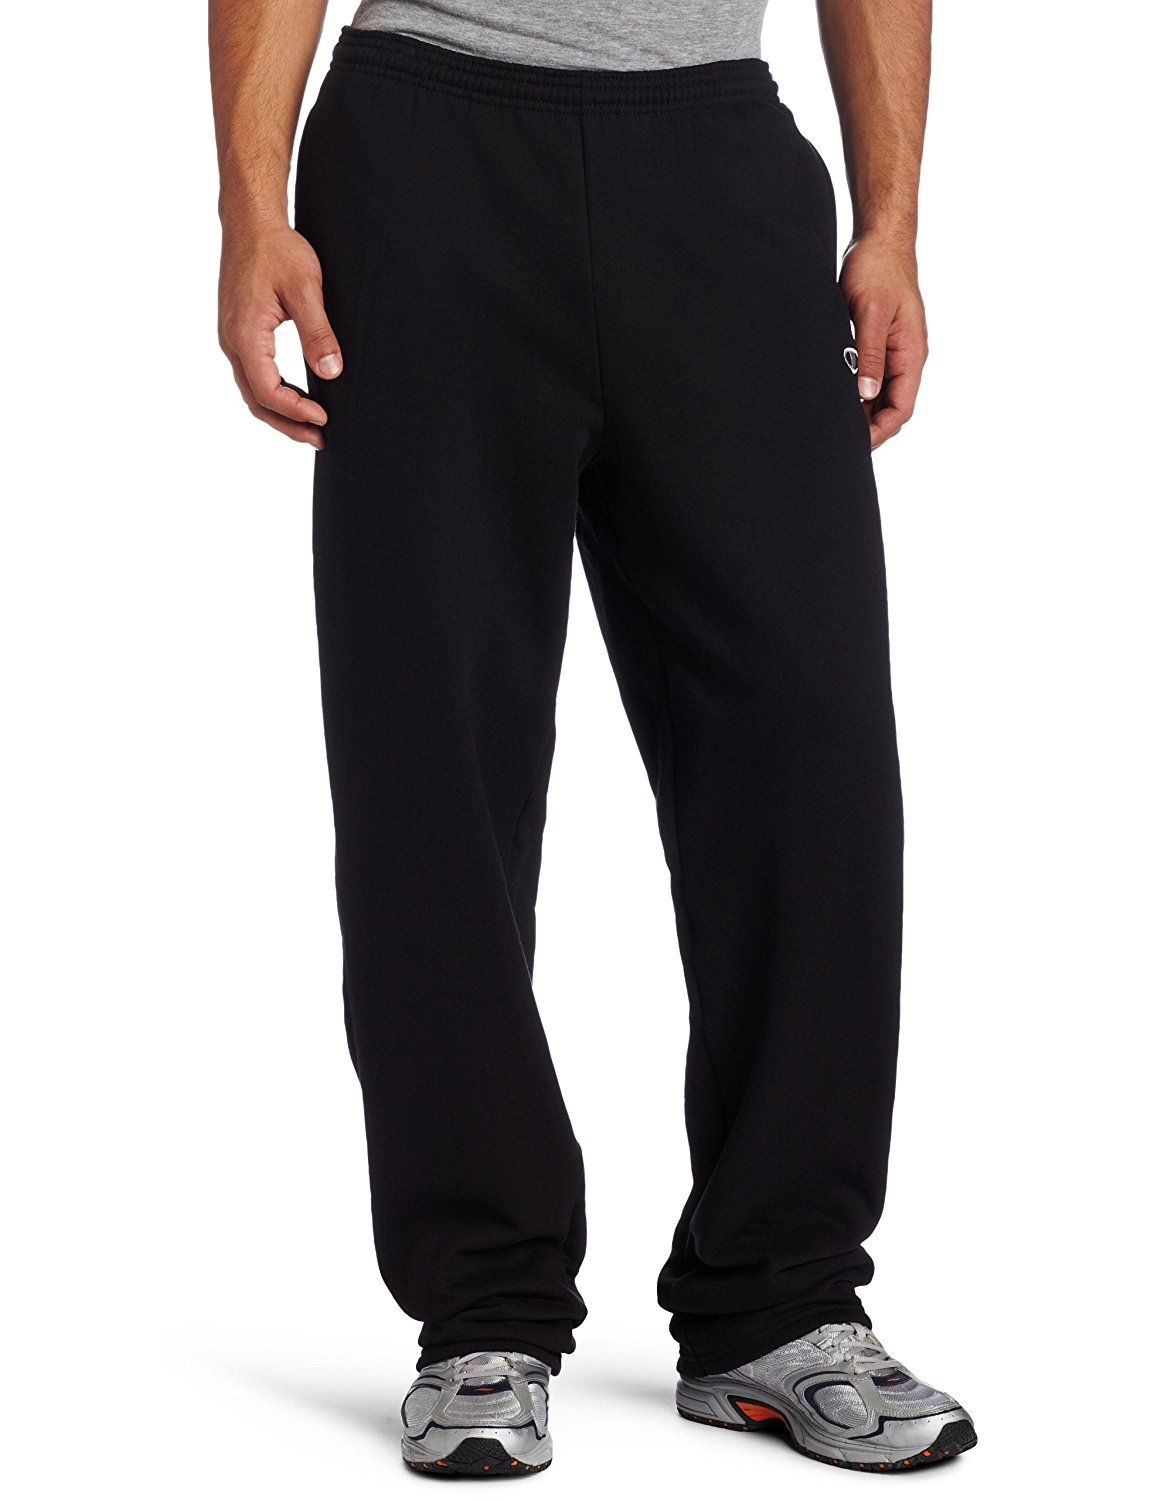 Champion Men's Open Bottom Eco Fleece Sweatpant - Small - Black - 70086 - Basketball Clothing Basketball Uniforms 70086